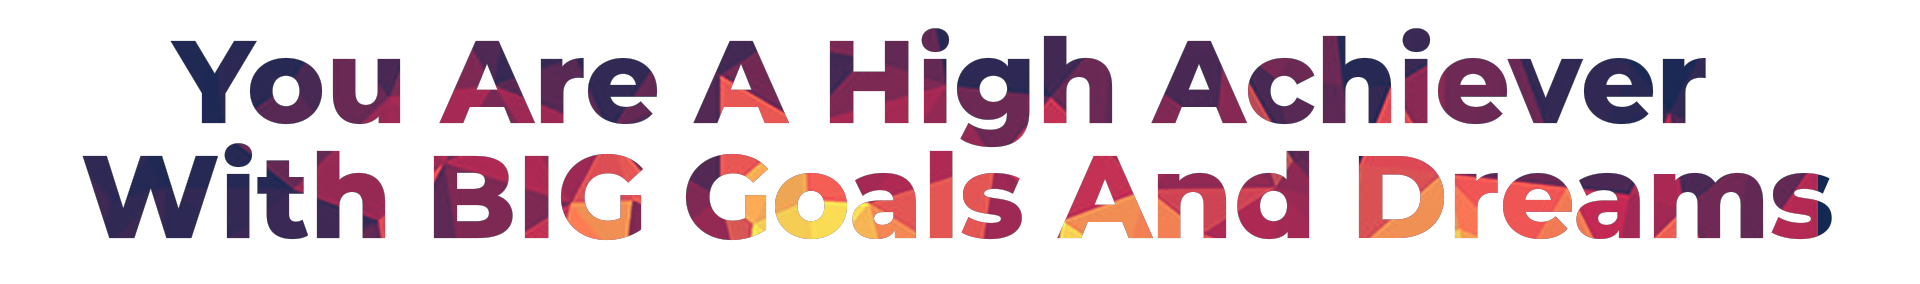 You Are A High Achiever With BIG Goals And Dreams